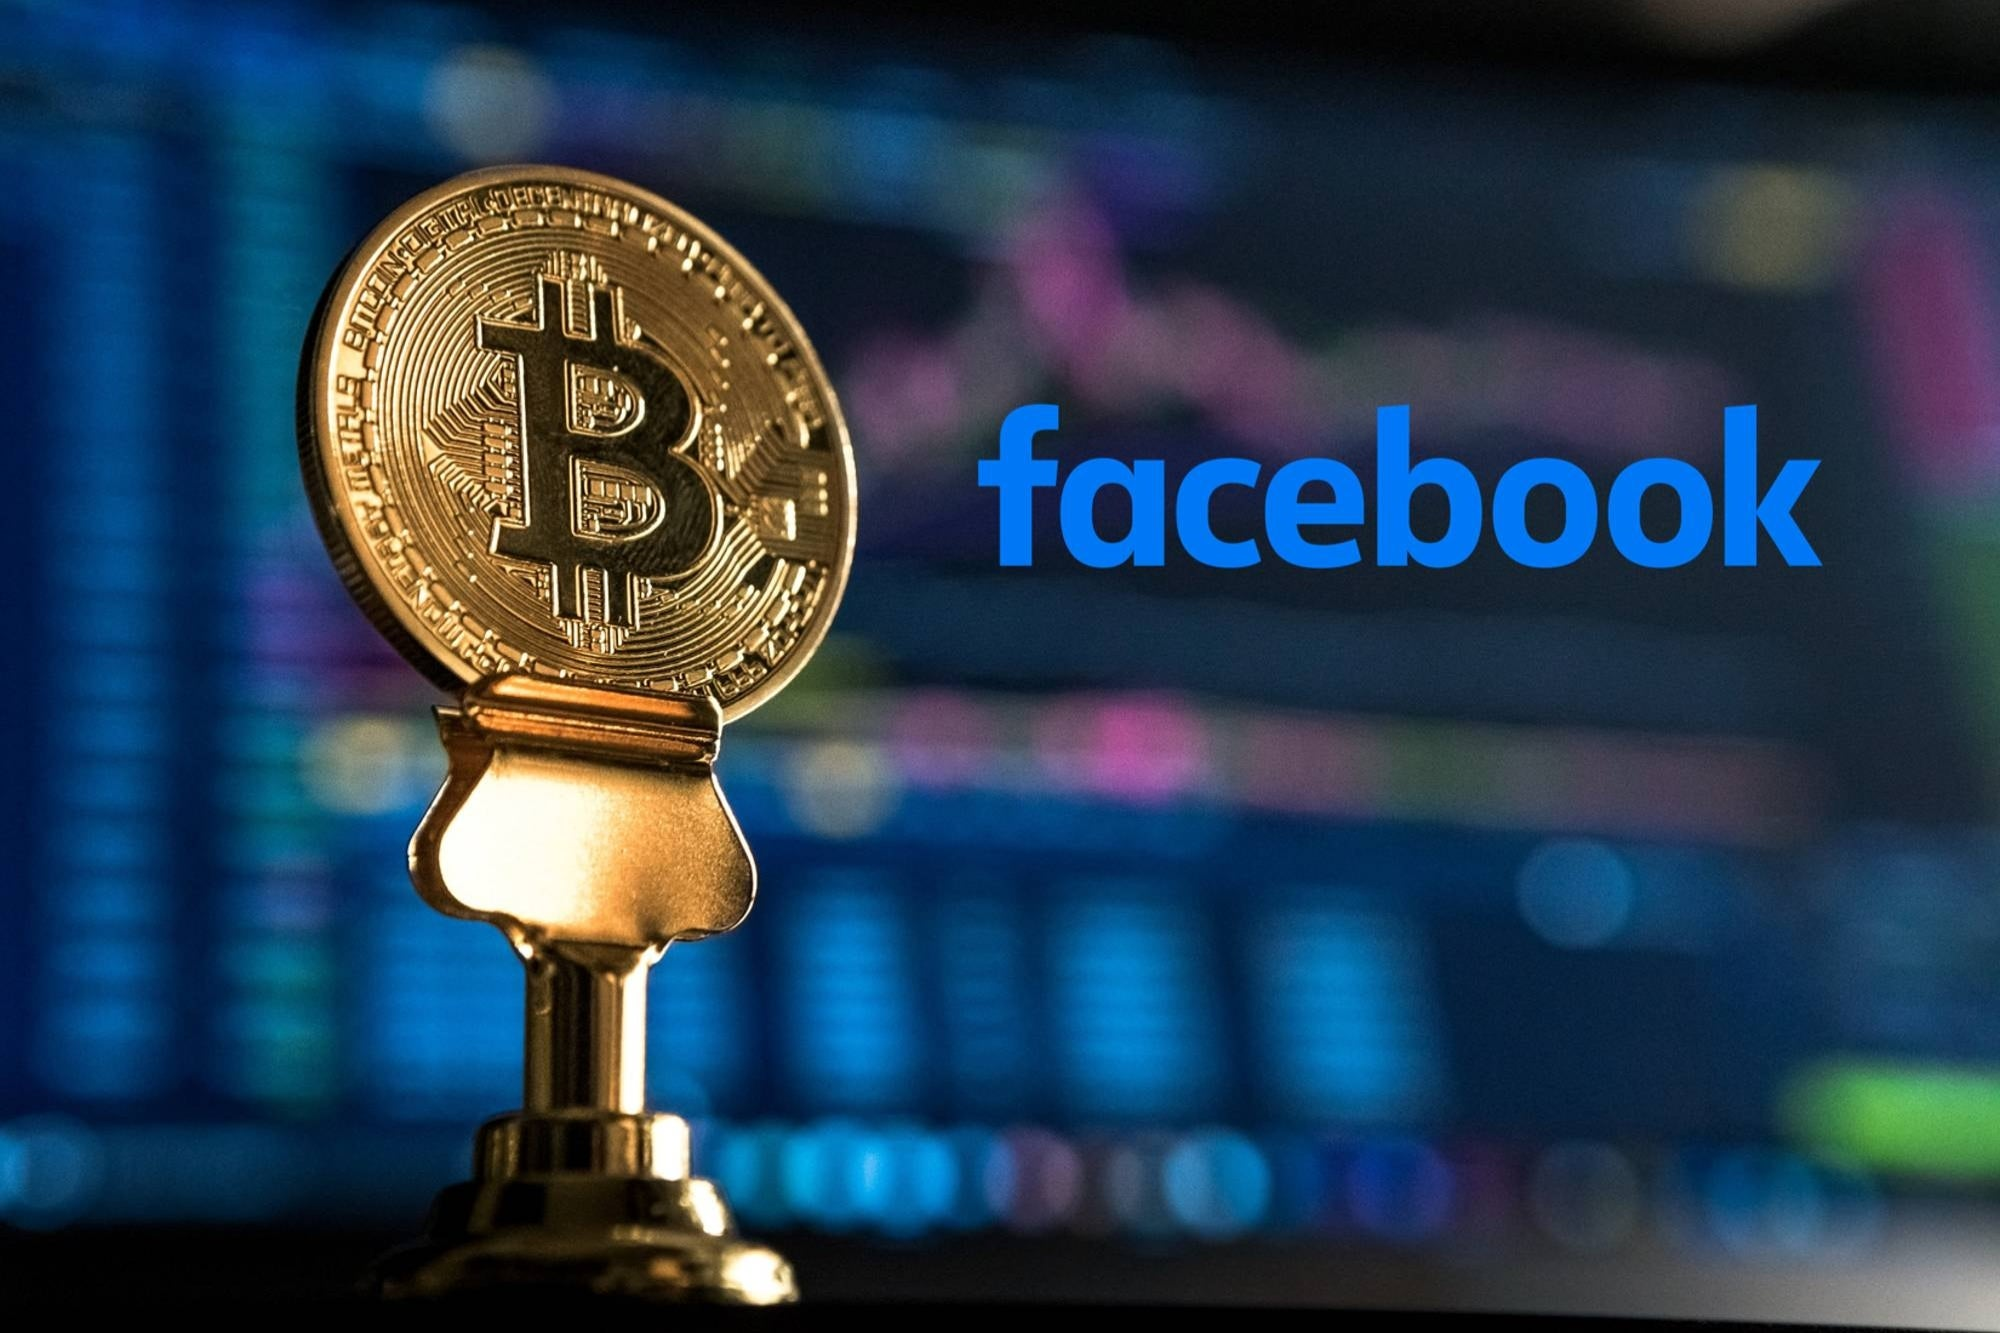 Bitcoin becomes more valuable than Facebook after the fall of the social network